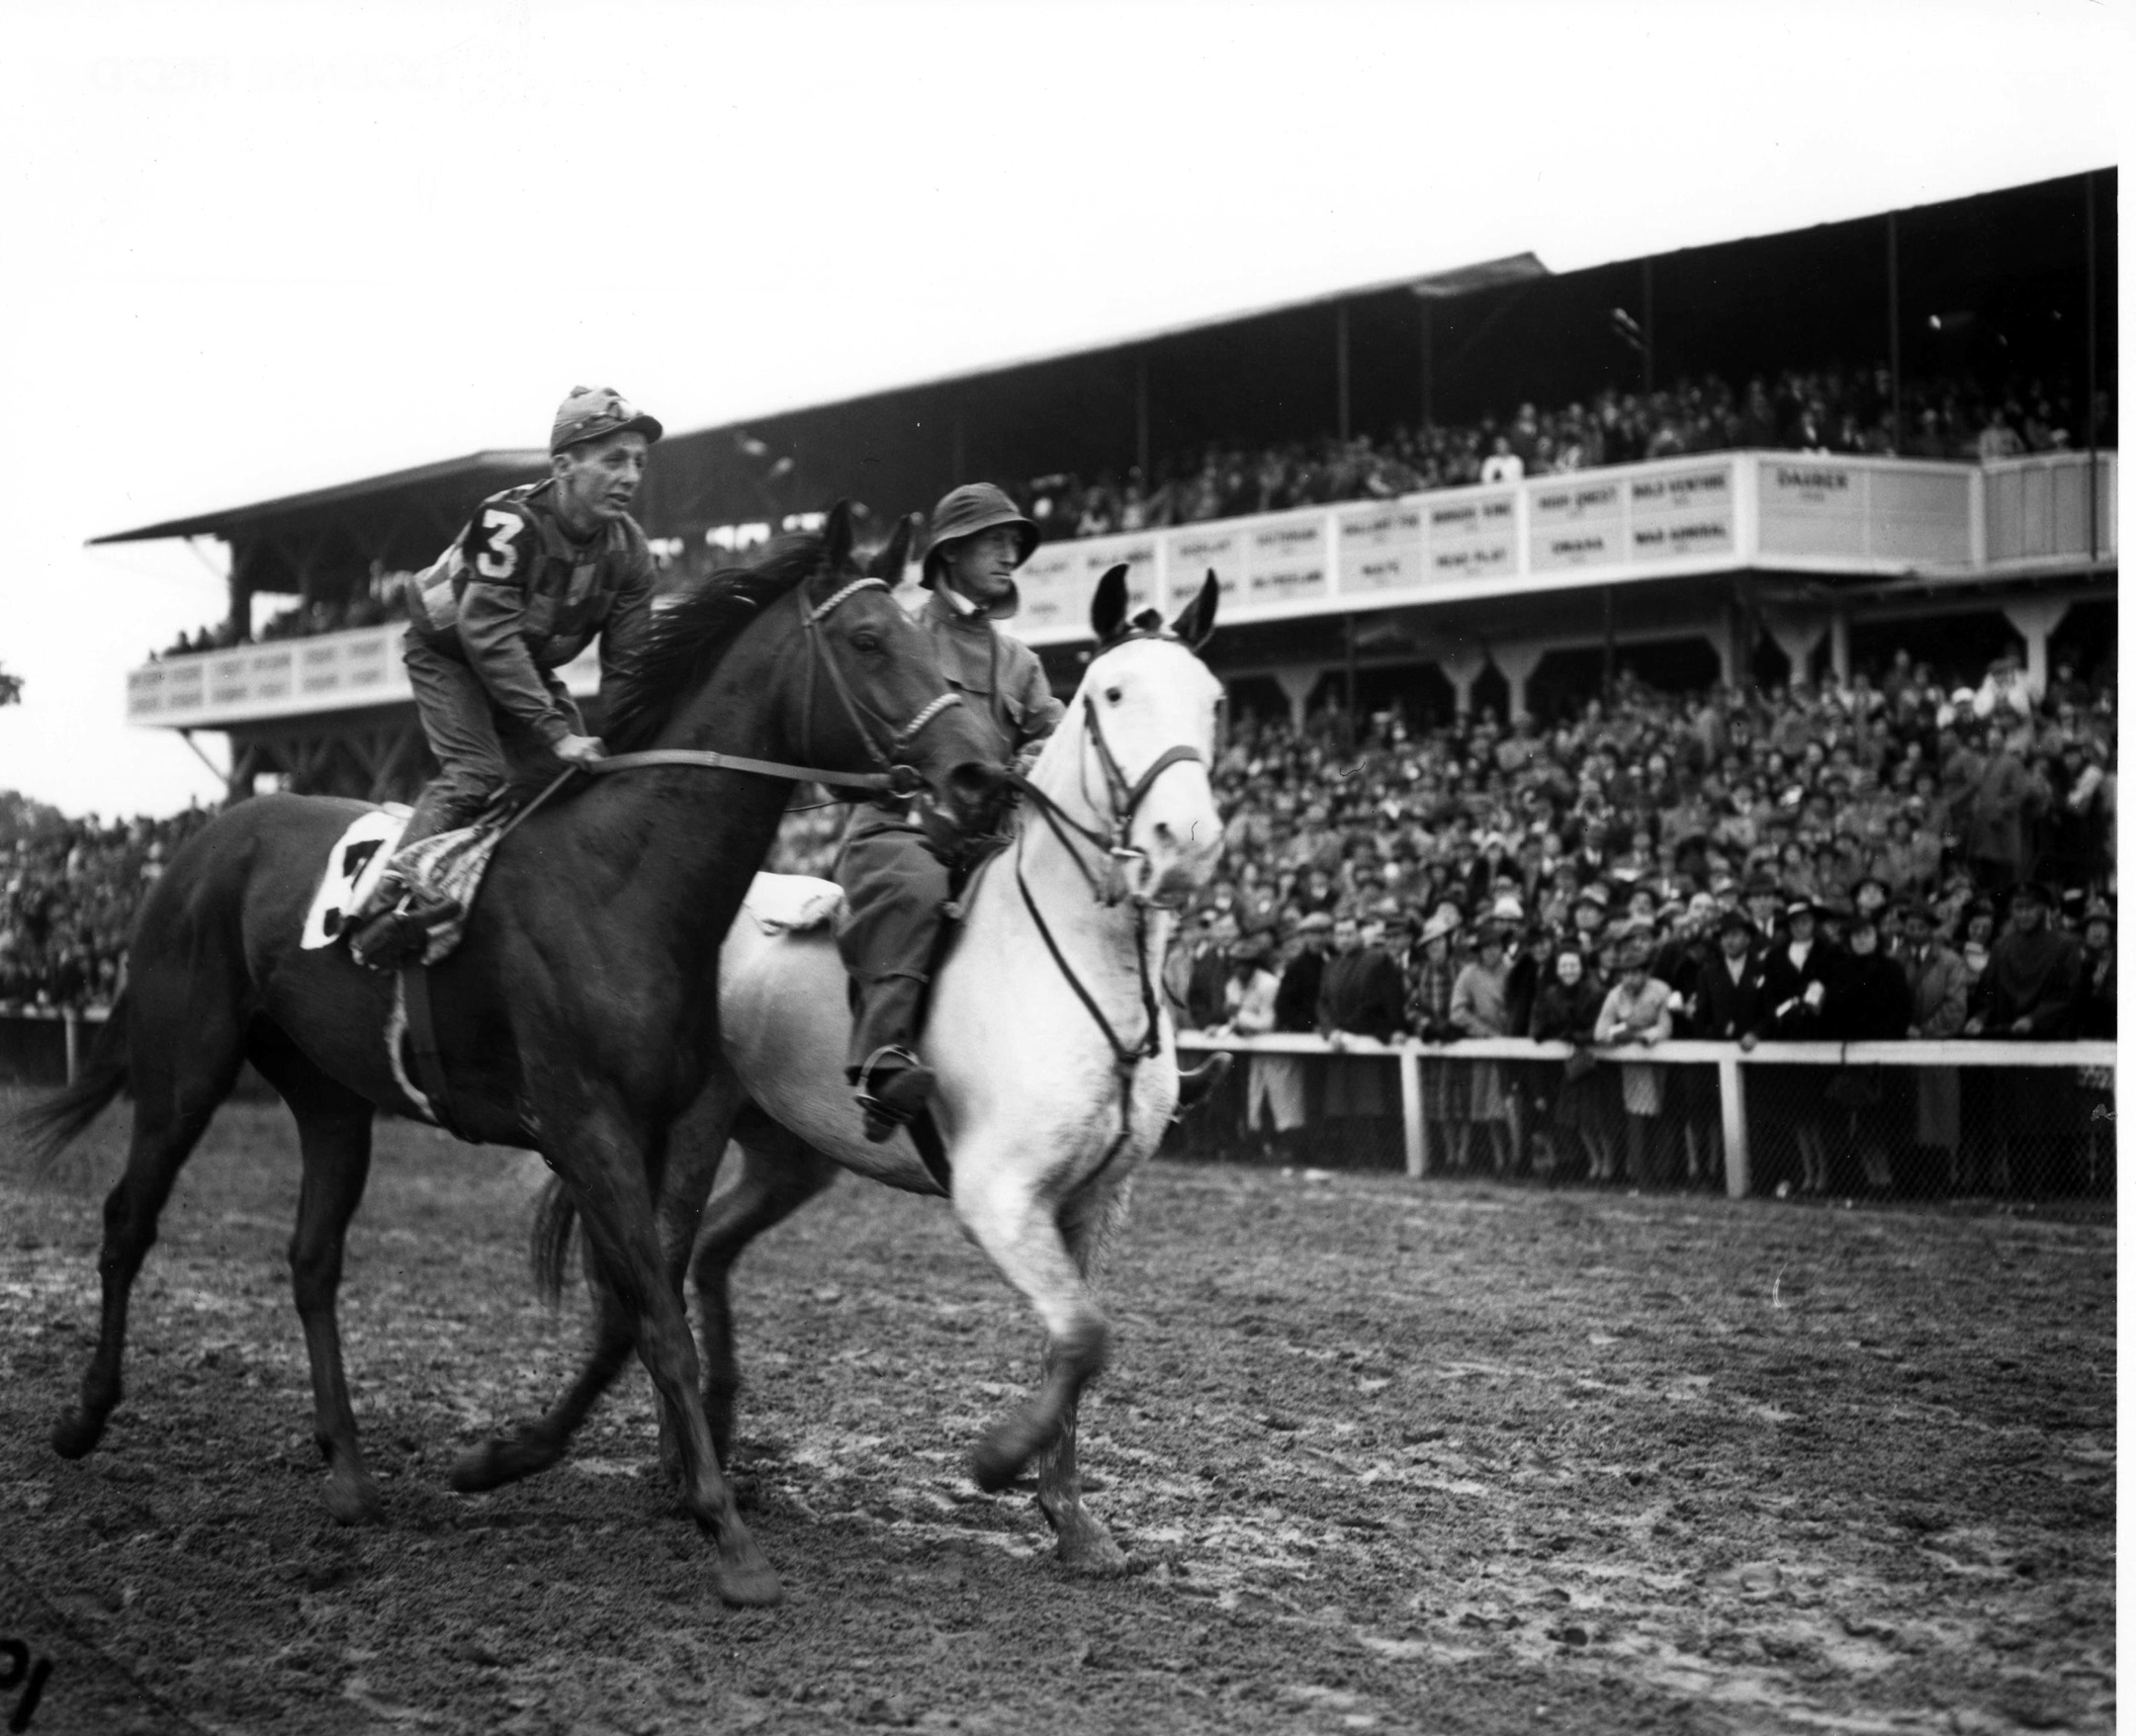 Challedon at the 1939 Preakness Stakes at Pimlico Race Course (Keeneland Library Morgan Collection/Museum Collection)